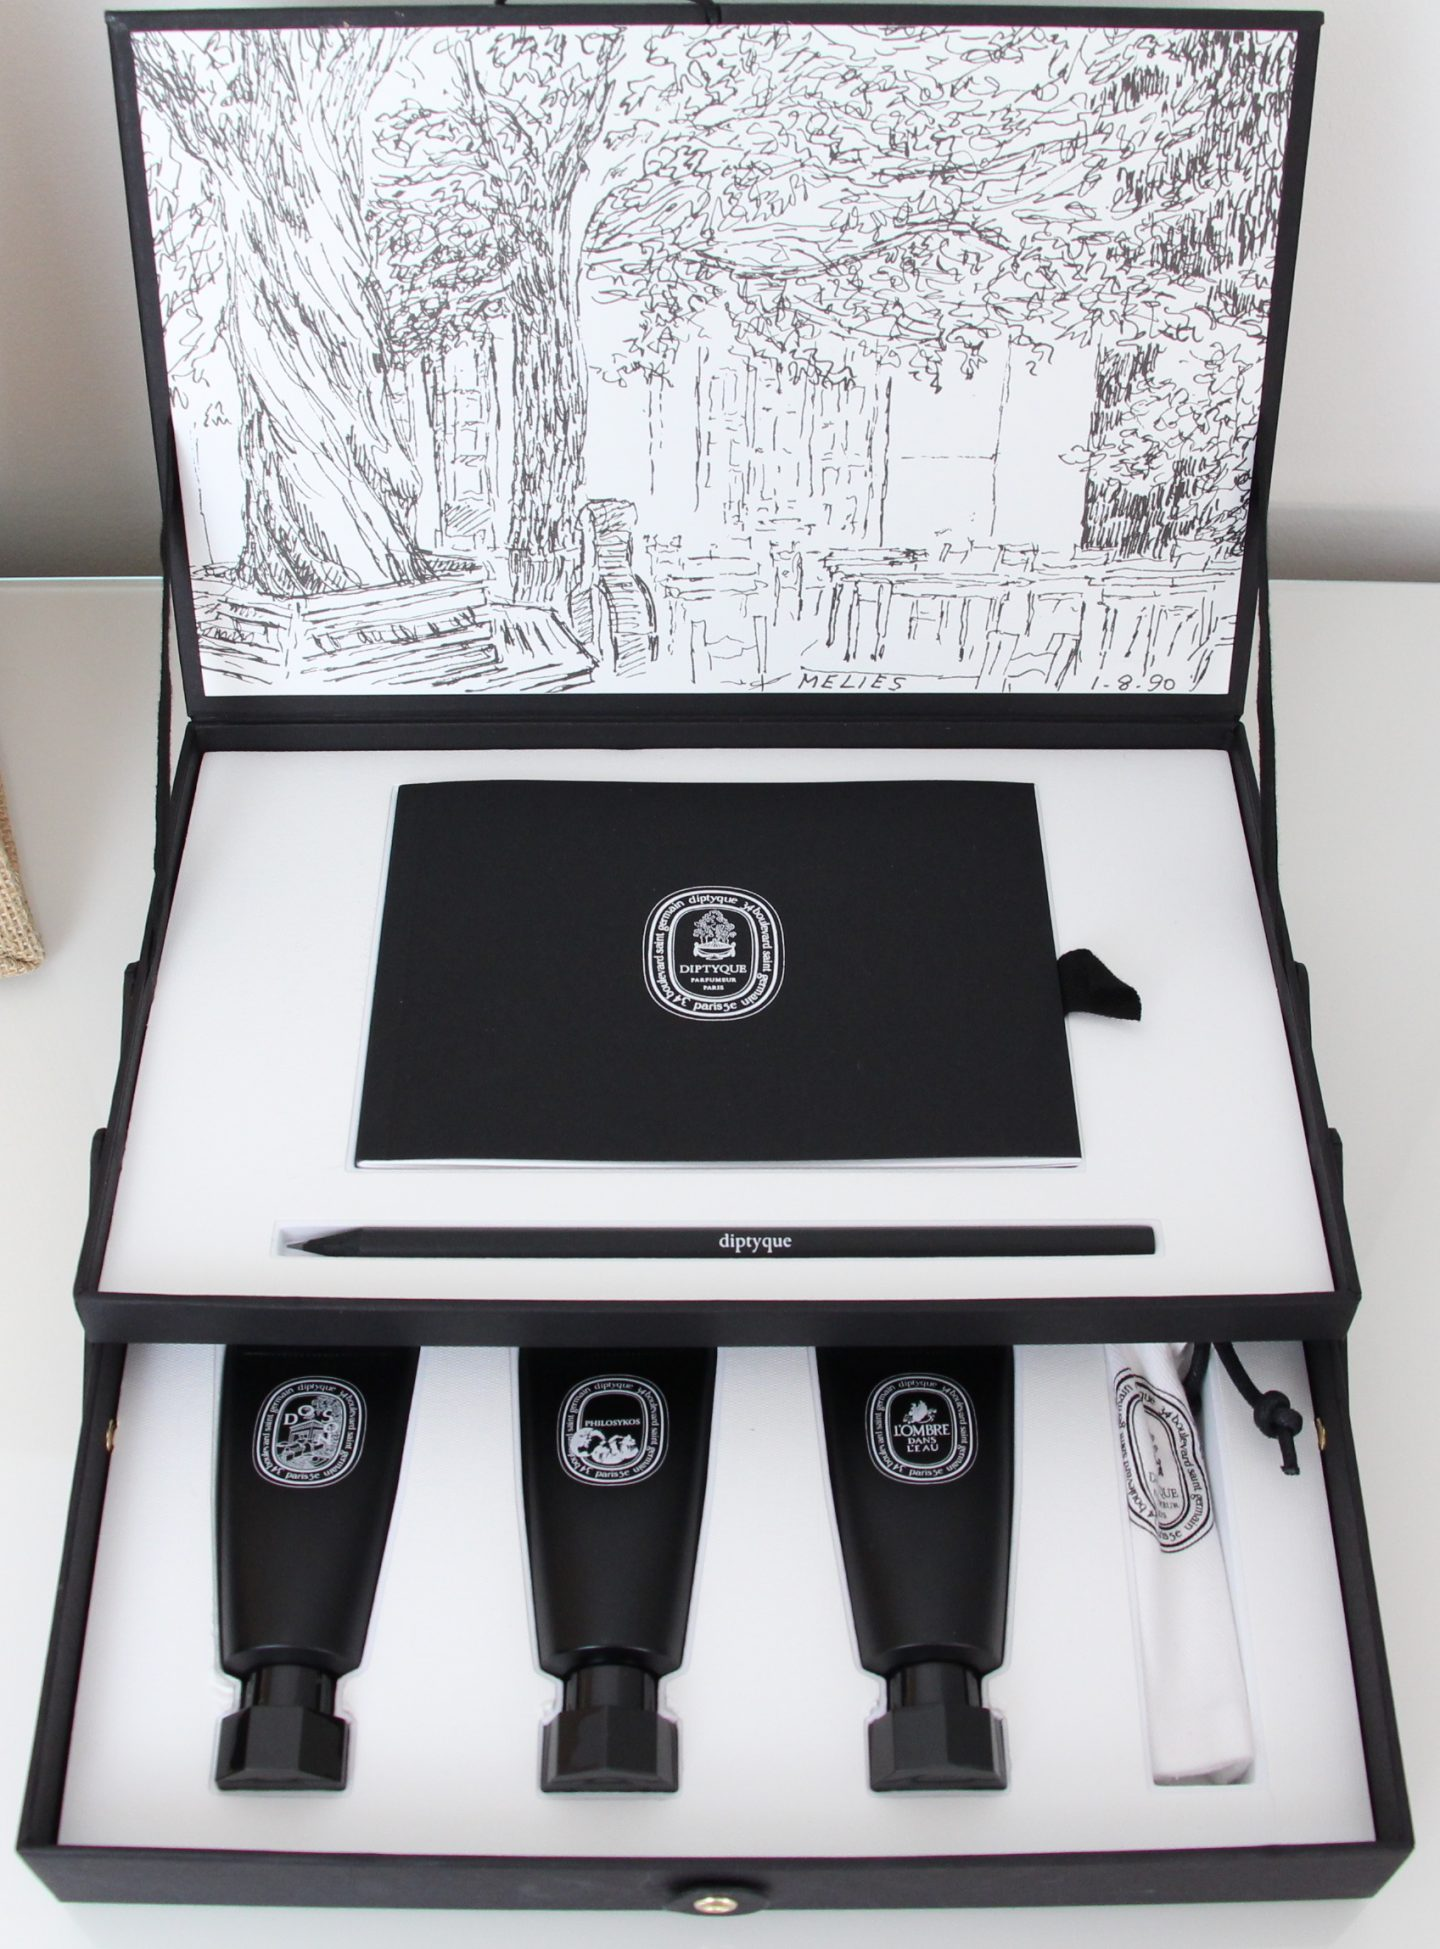 Diptyque 50th Anniversary Limited Edition Perfume Oil Coffret